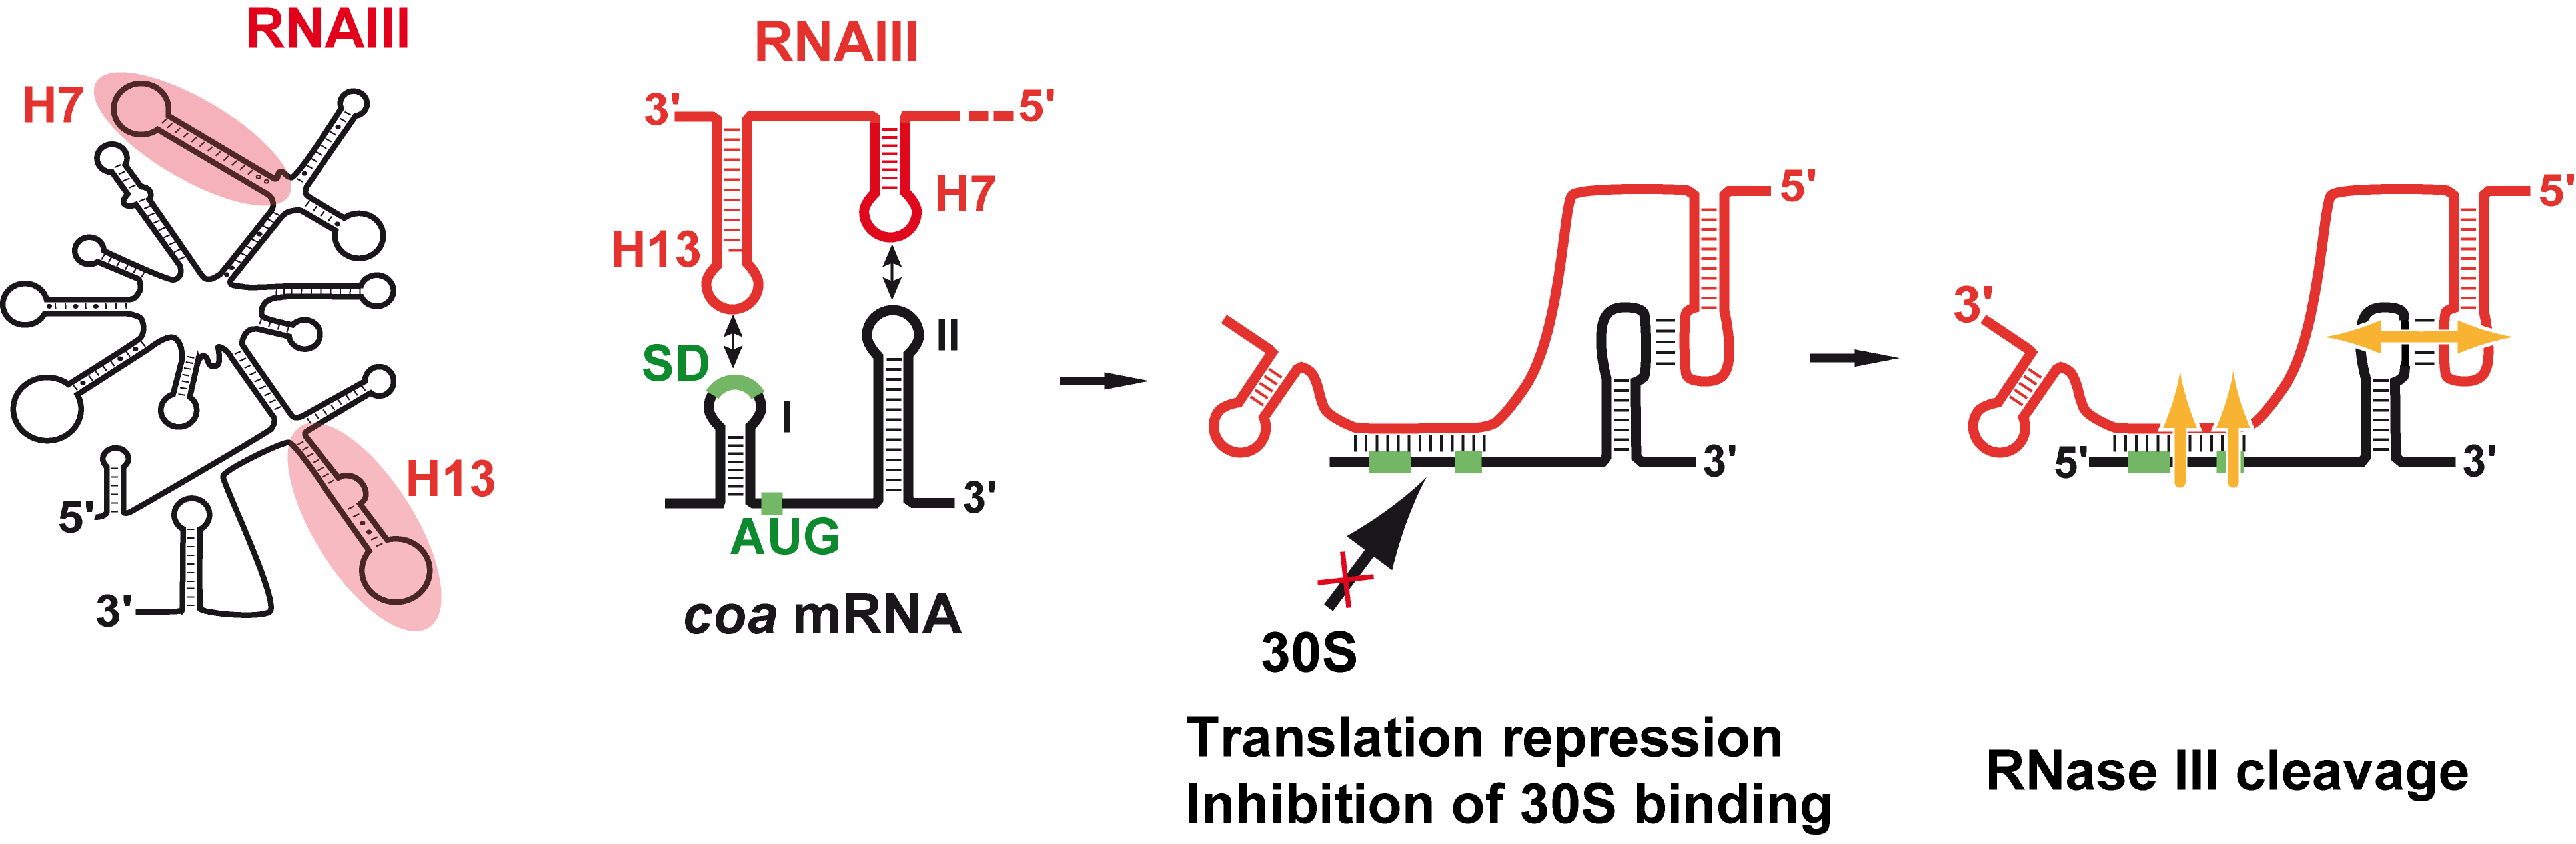 Schematic view of RNAIII-mediated repression of <i>coa</i> mRNA.